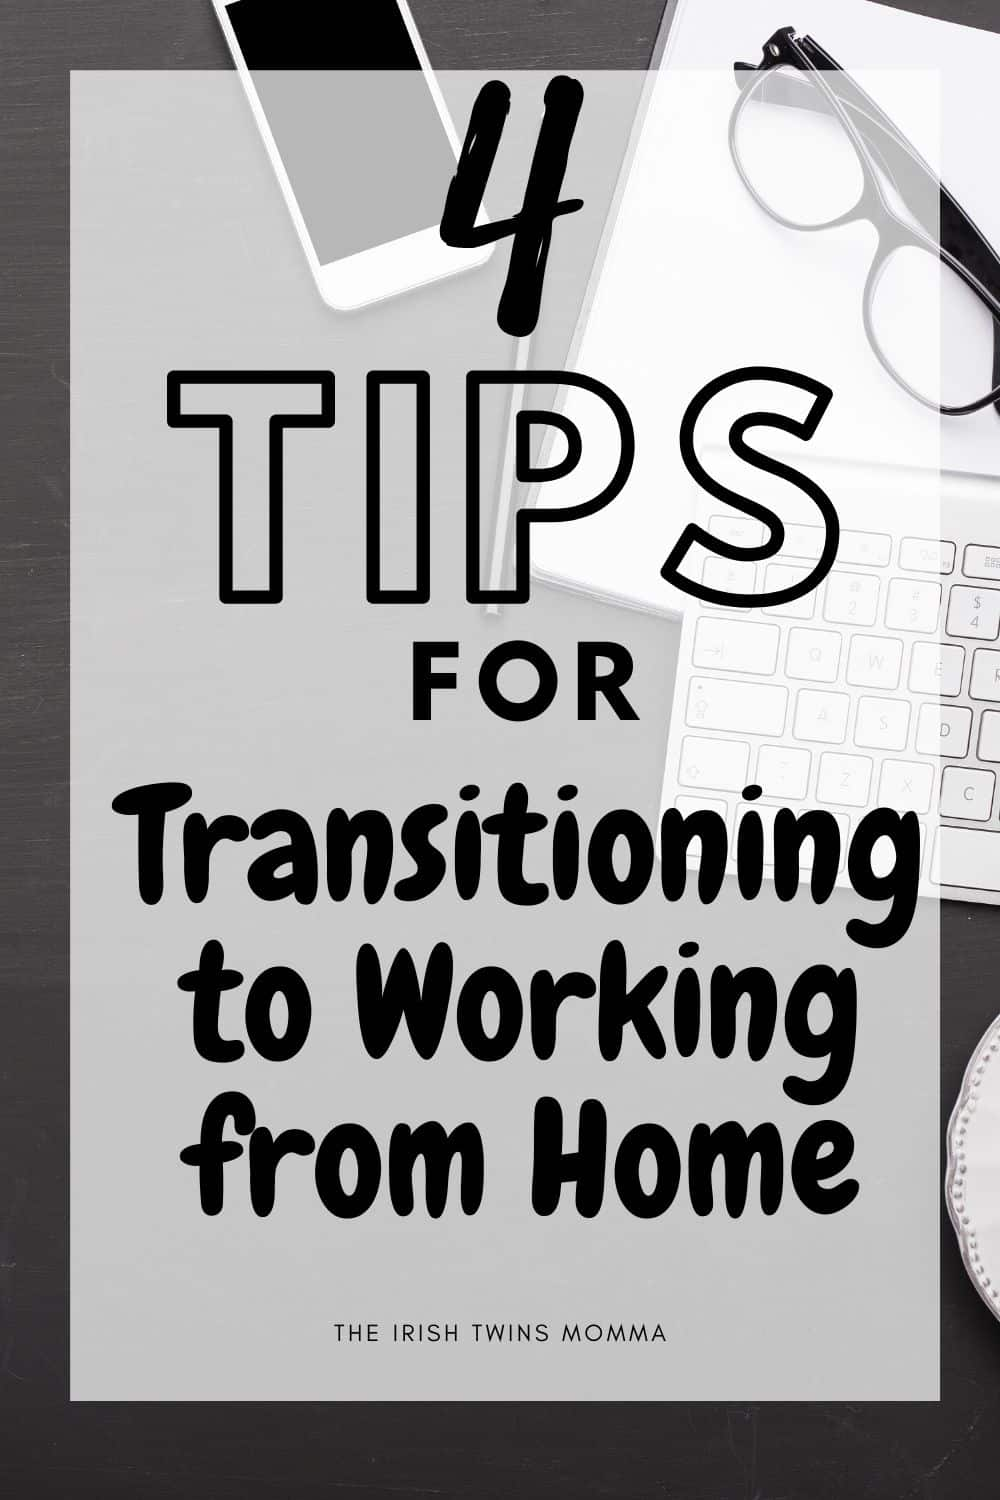 While home working can deliver a lot of benefits, there are a lot of challenges it presents too. Here are my top 4 tips after working from home for 5 years. via @irishtwinsmom11